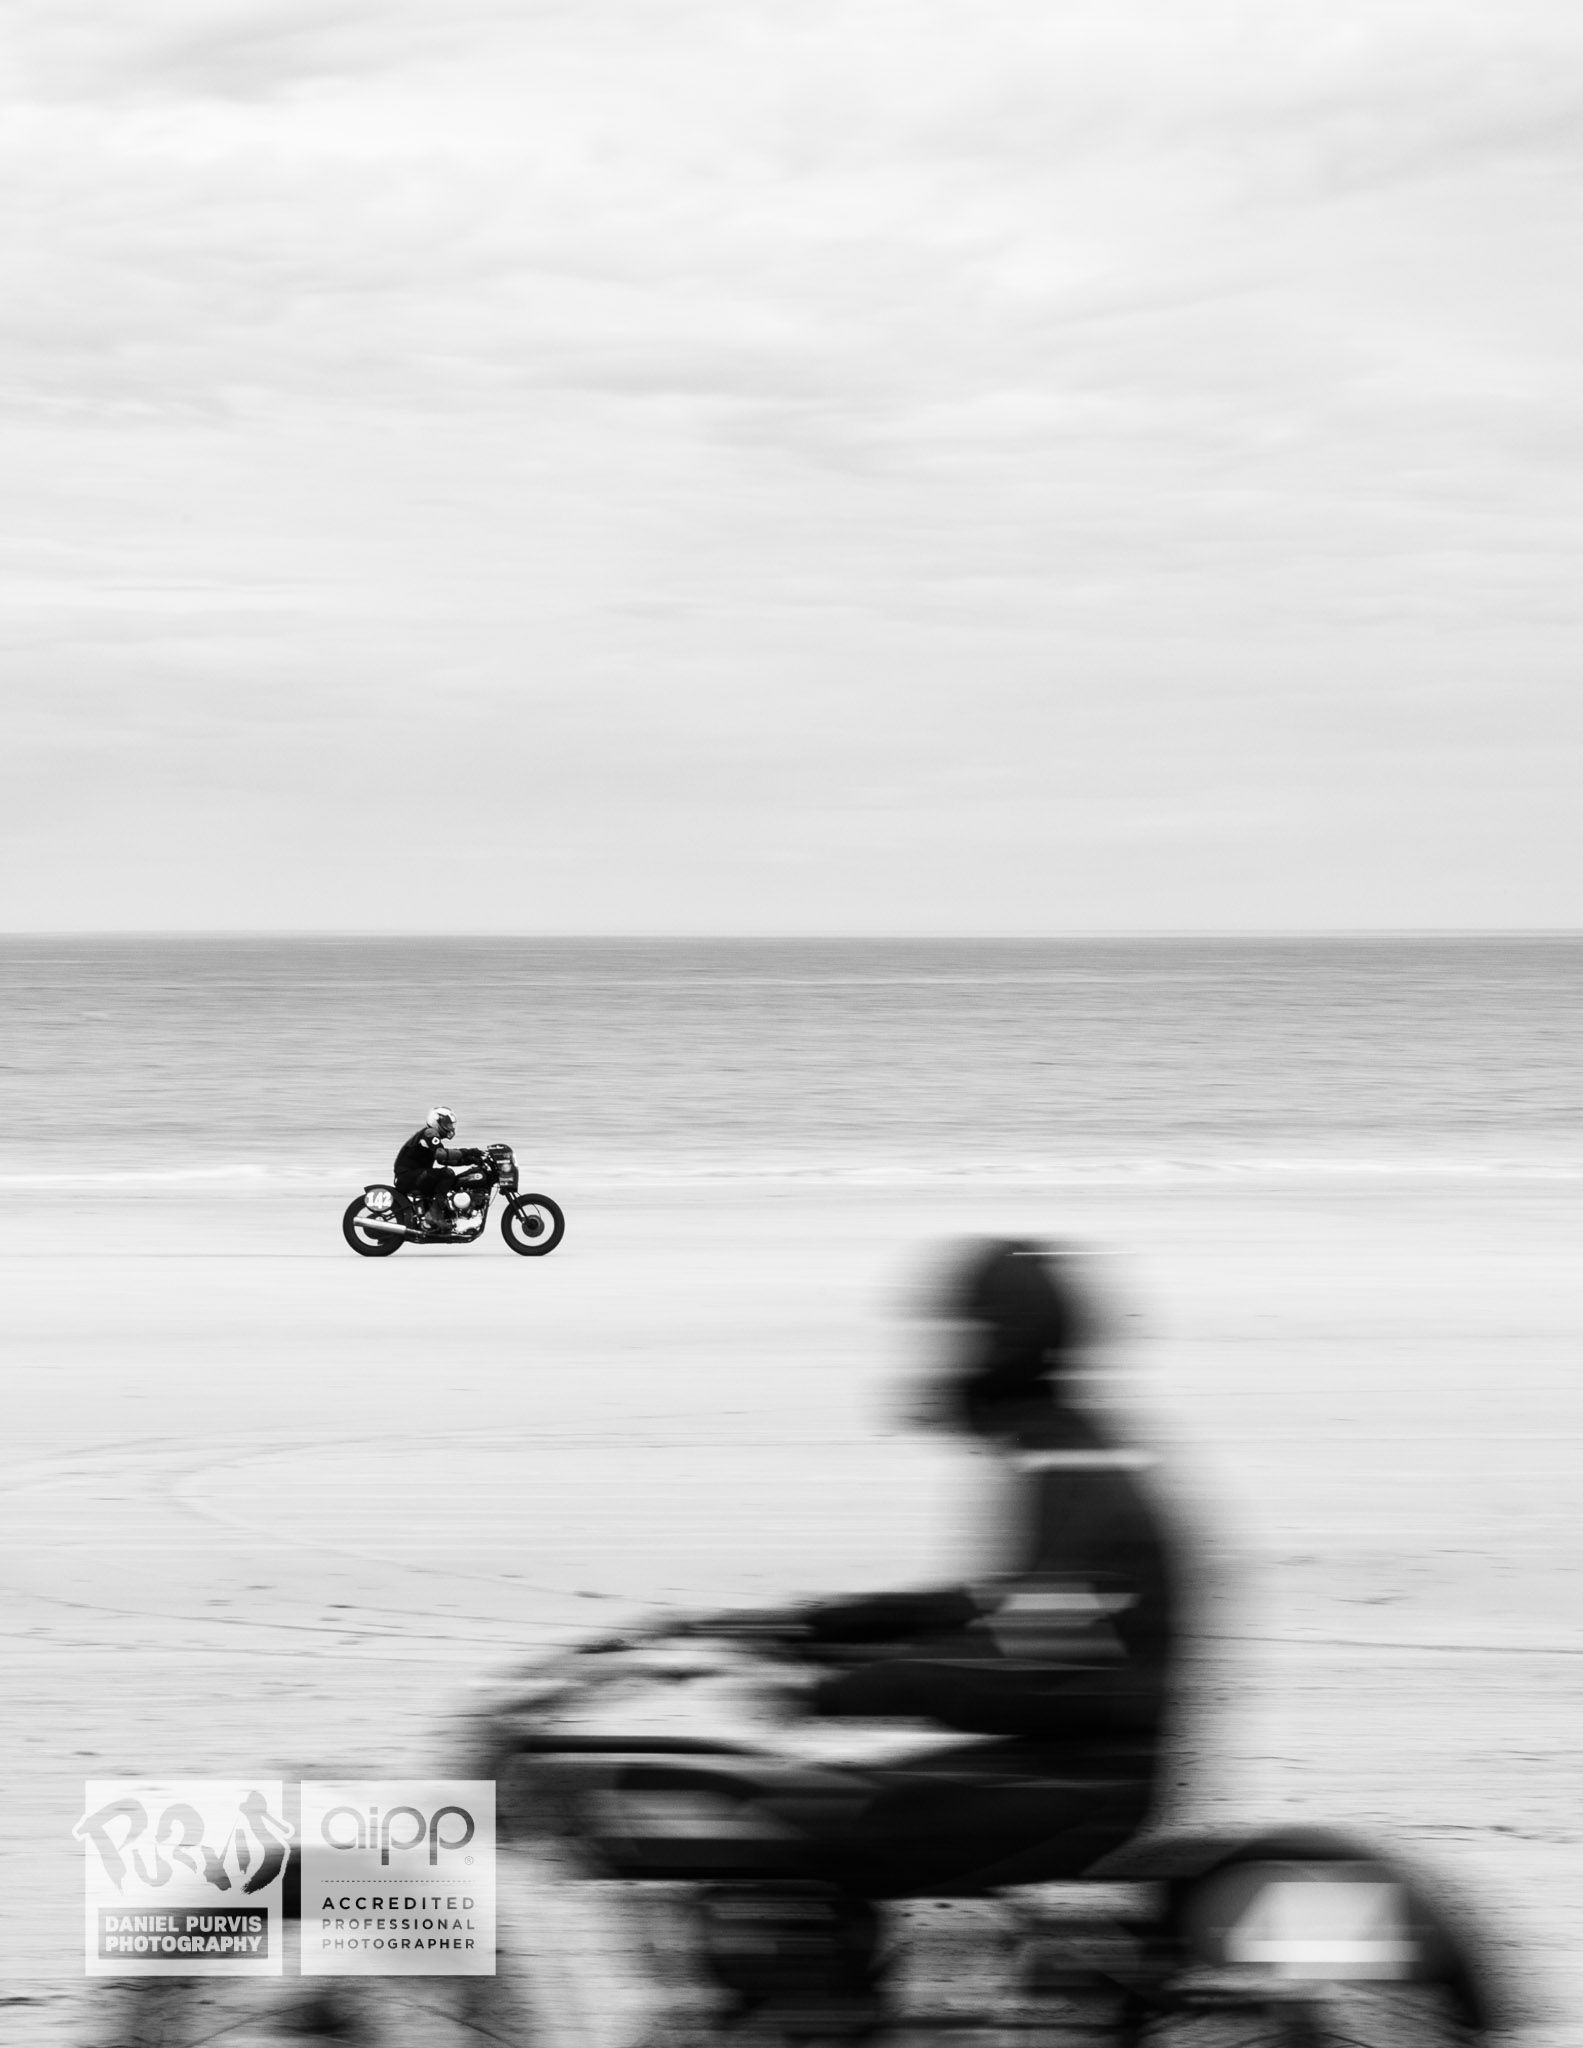 (142) Charlie Palmer tearing up the beach on a 1937 1200cc Harley-Davidson. © Daniel Purvis